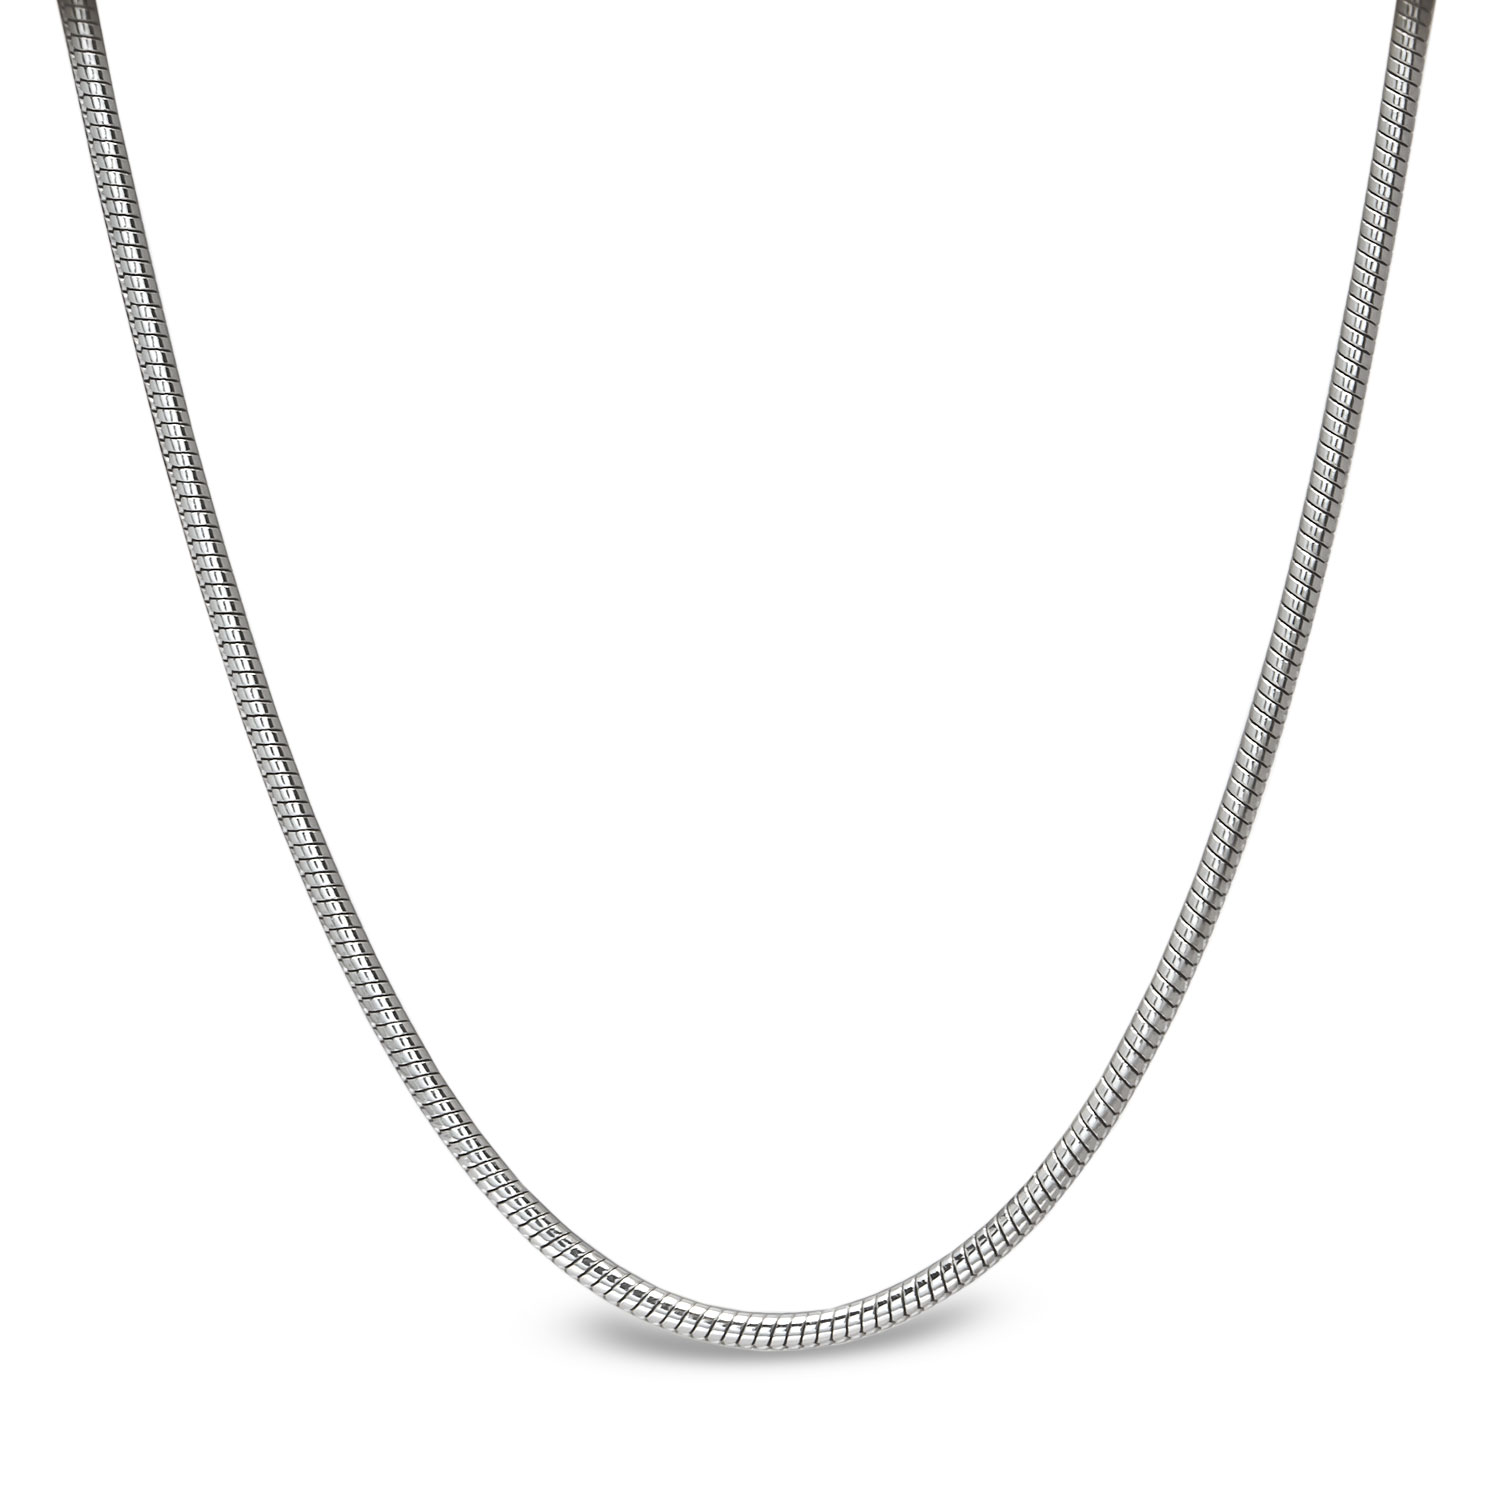 Classic Round Snake 14k White Gold Necklace - 16 in.